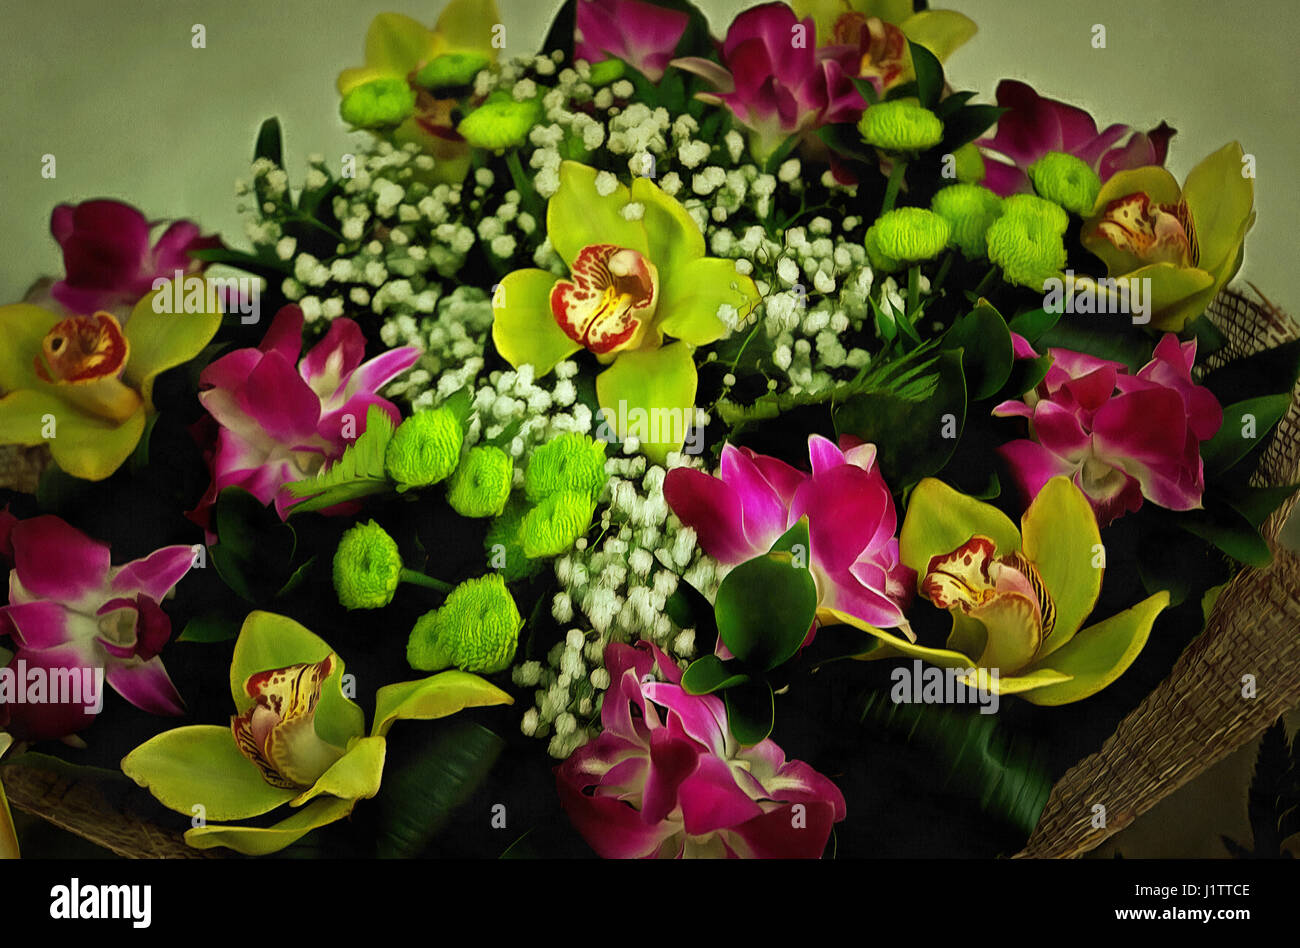 Illustrations Flowers Bouquet Painting Orchids Stock Photos ...